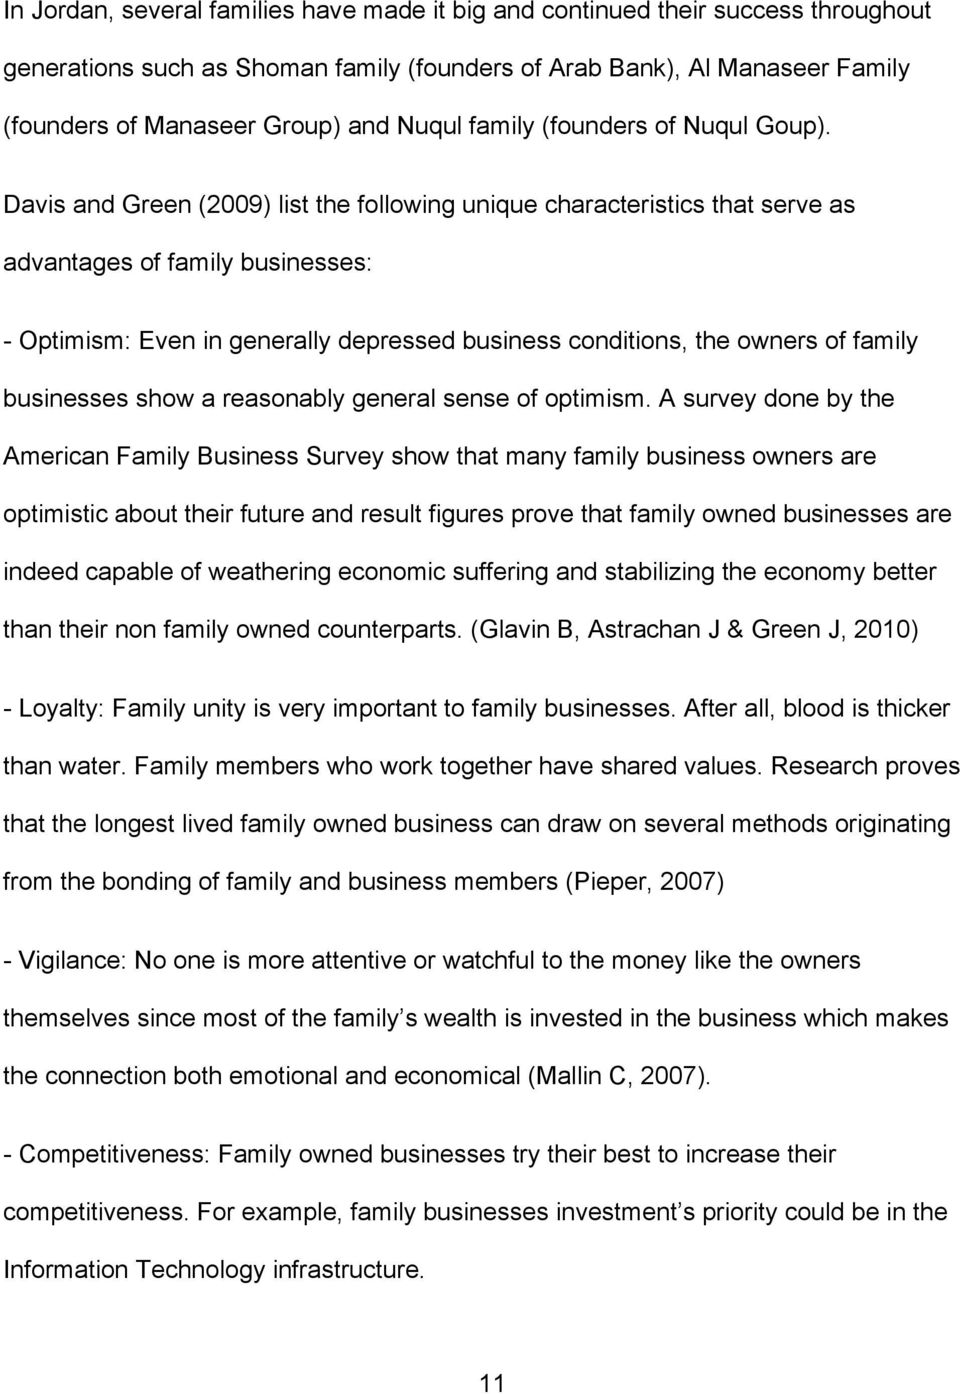 Davis and Green (2009) list the following unique characteristics that serve as advantages of family businesses: - Optimism: Even in generally depressed business conditions, the owners of family